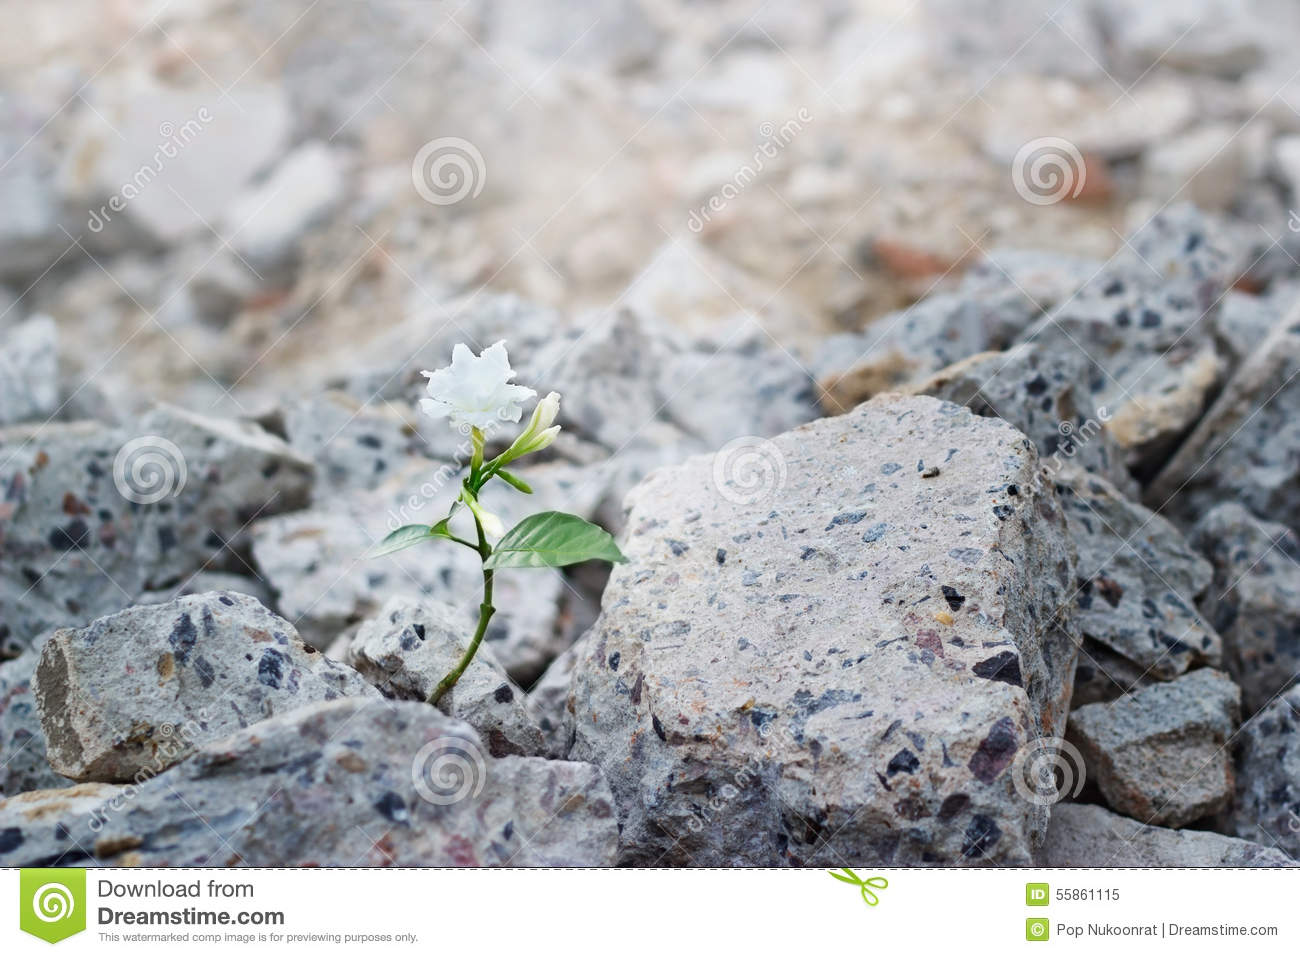 White flower growing on cracks ruins building, hope and faith concept, soft focus